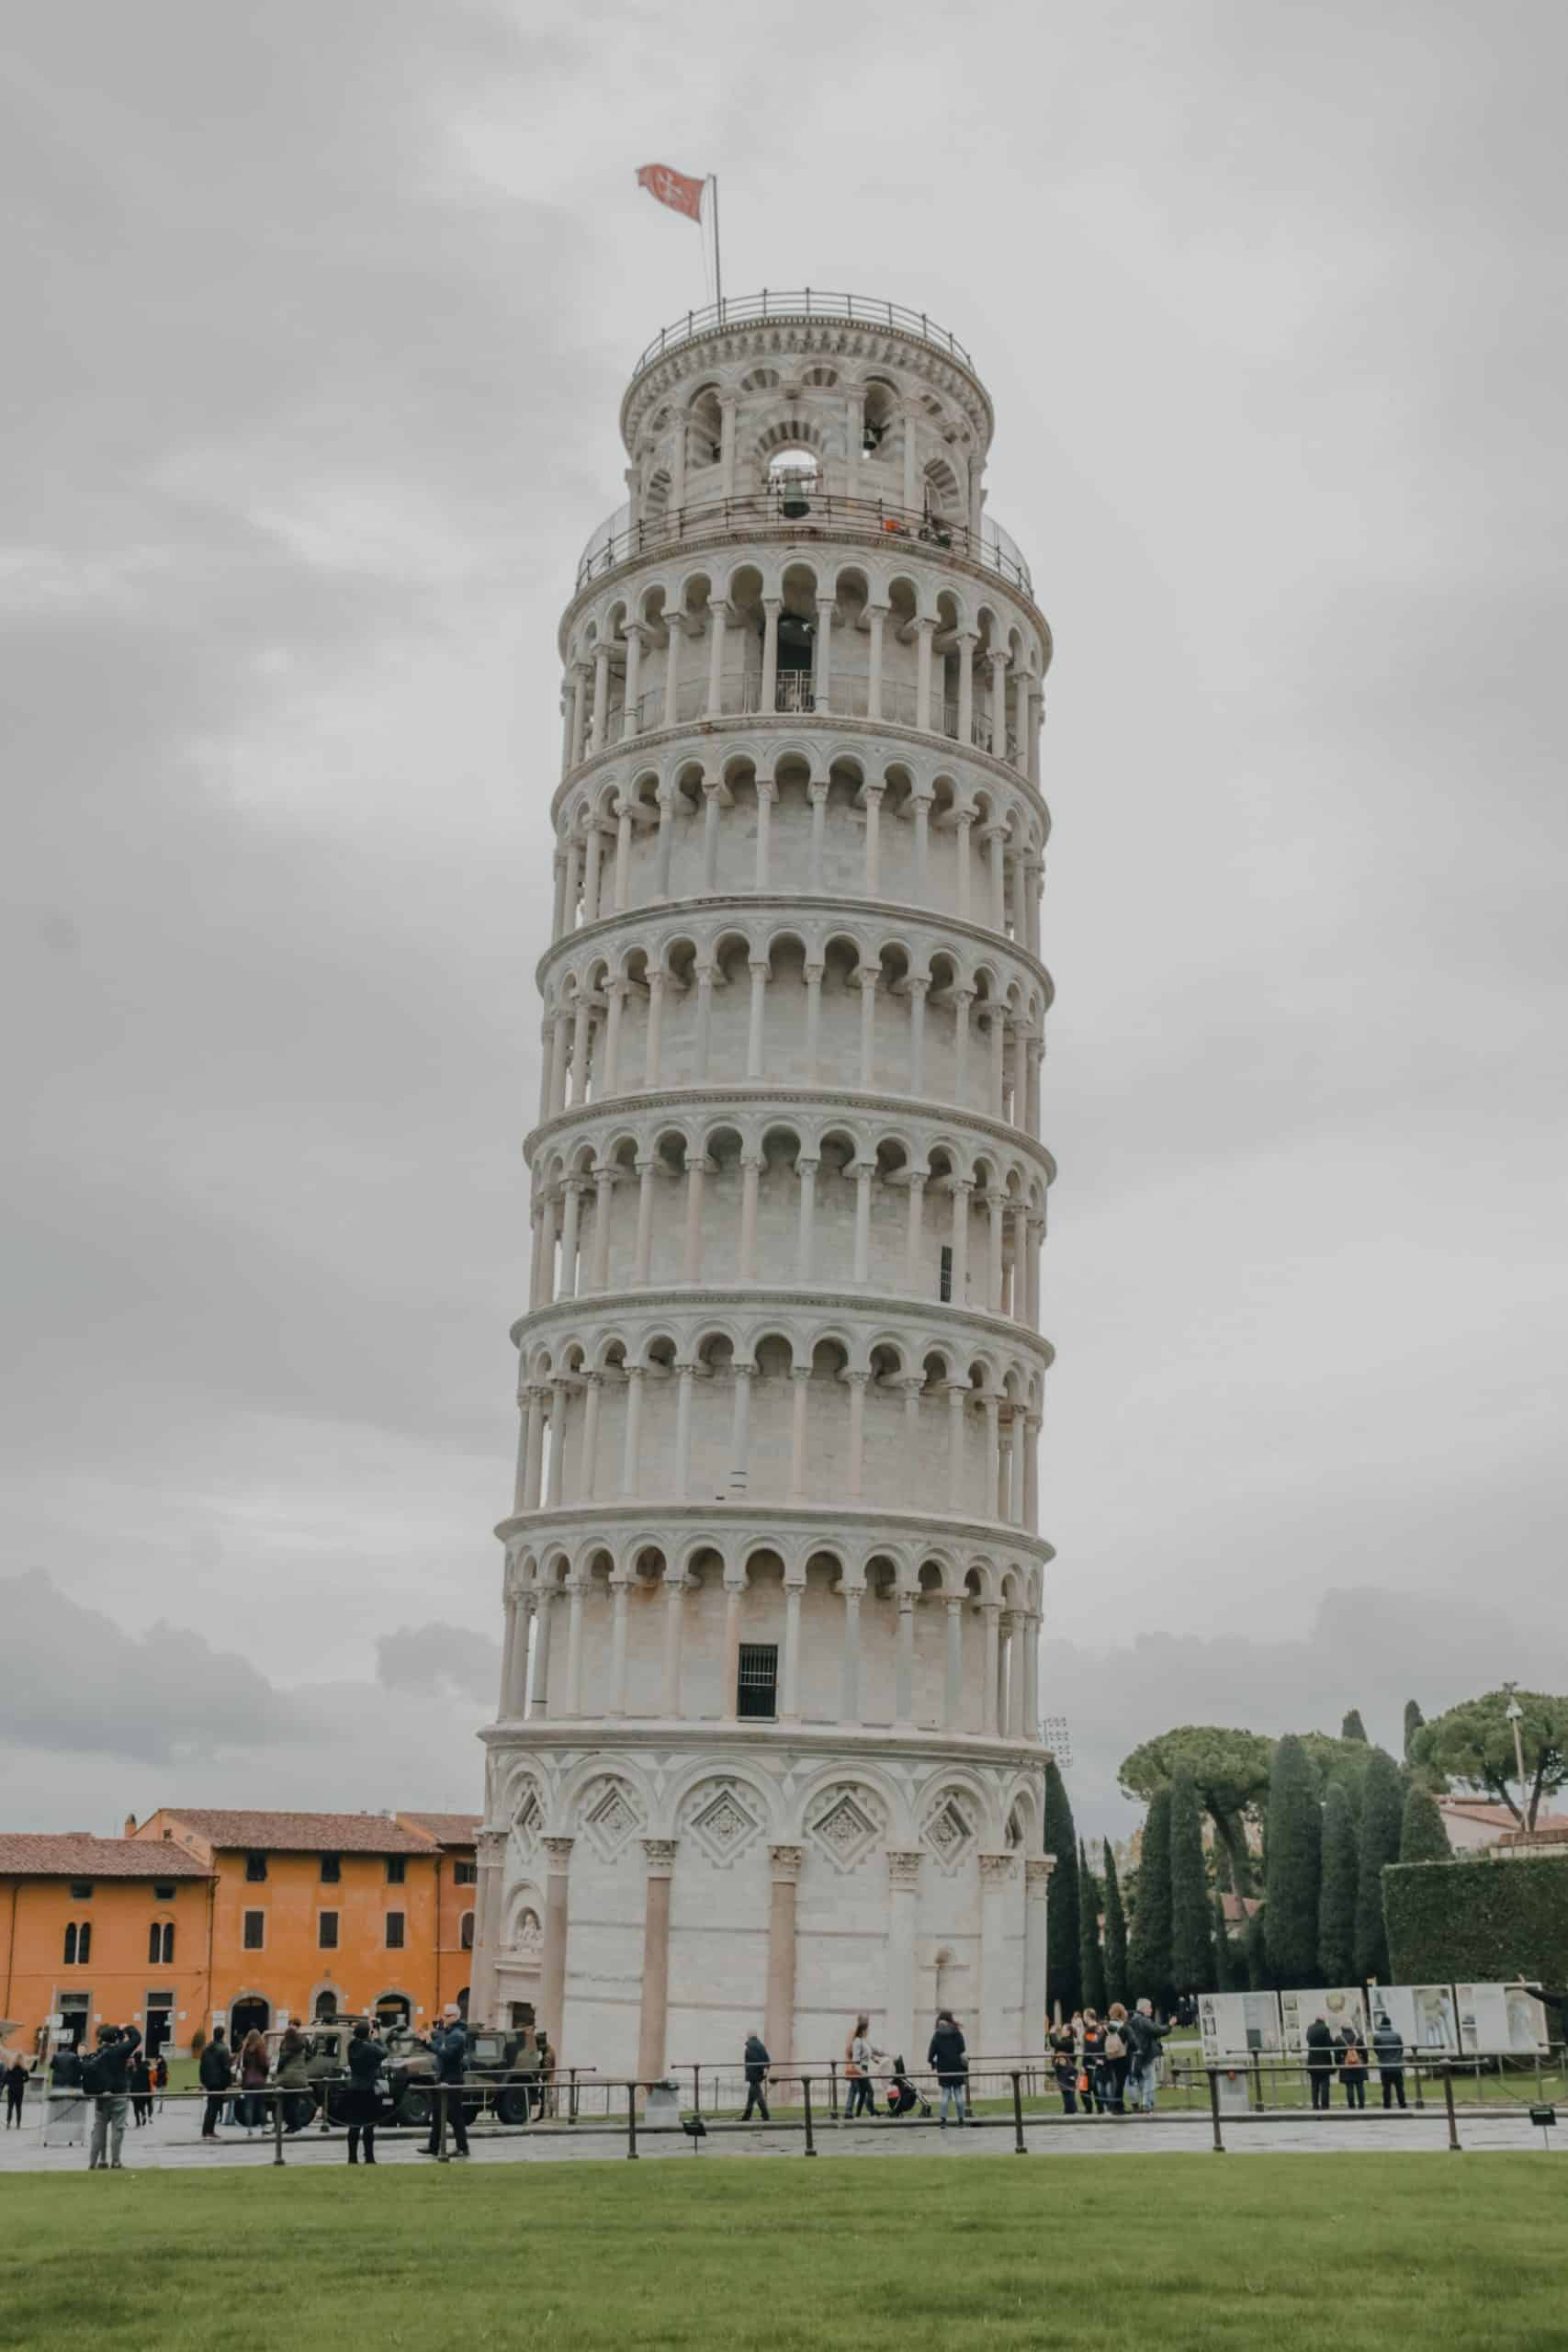 Facts About the Leaning Tower of Pisa